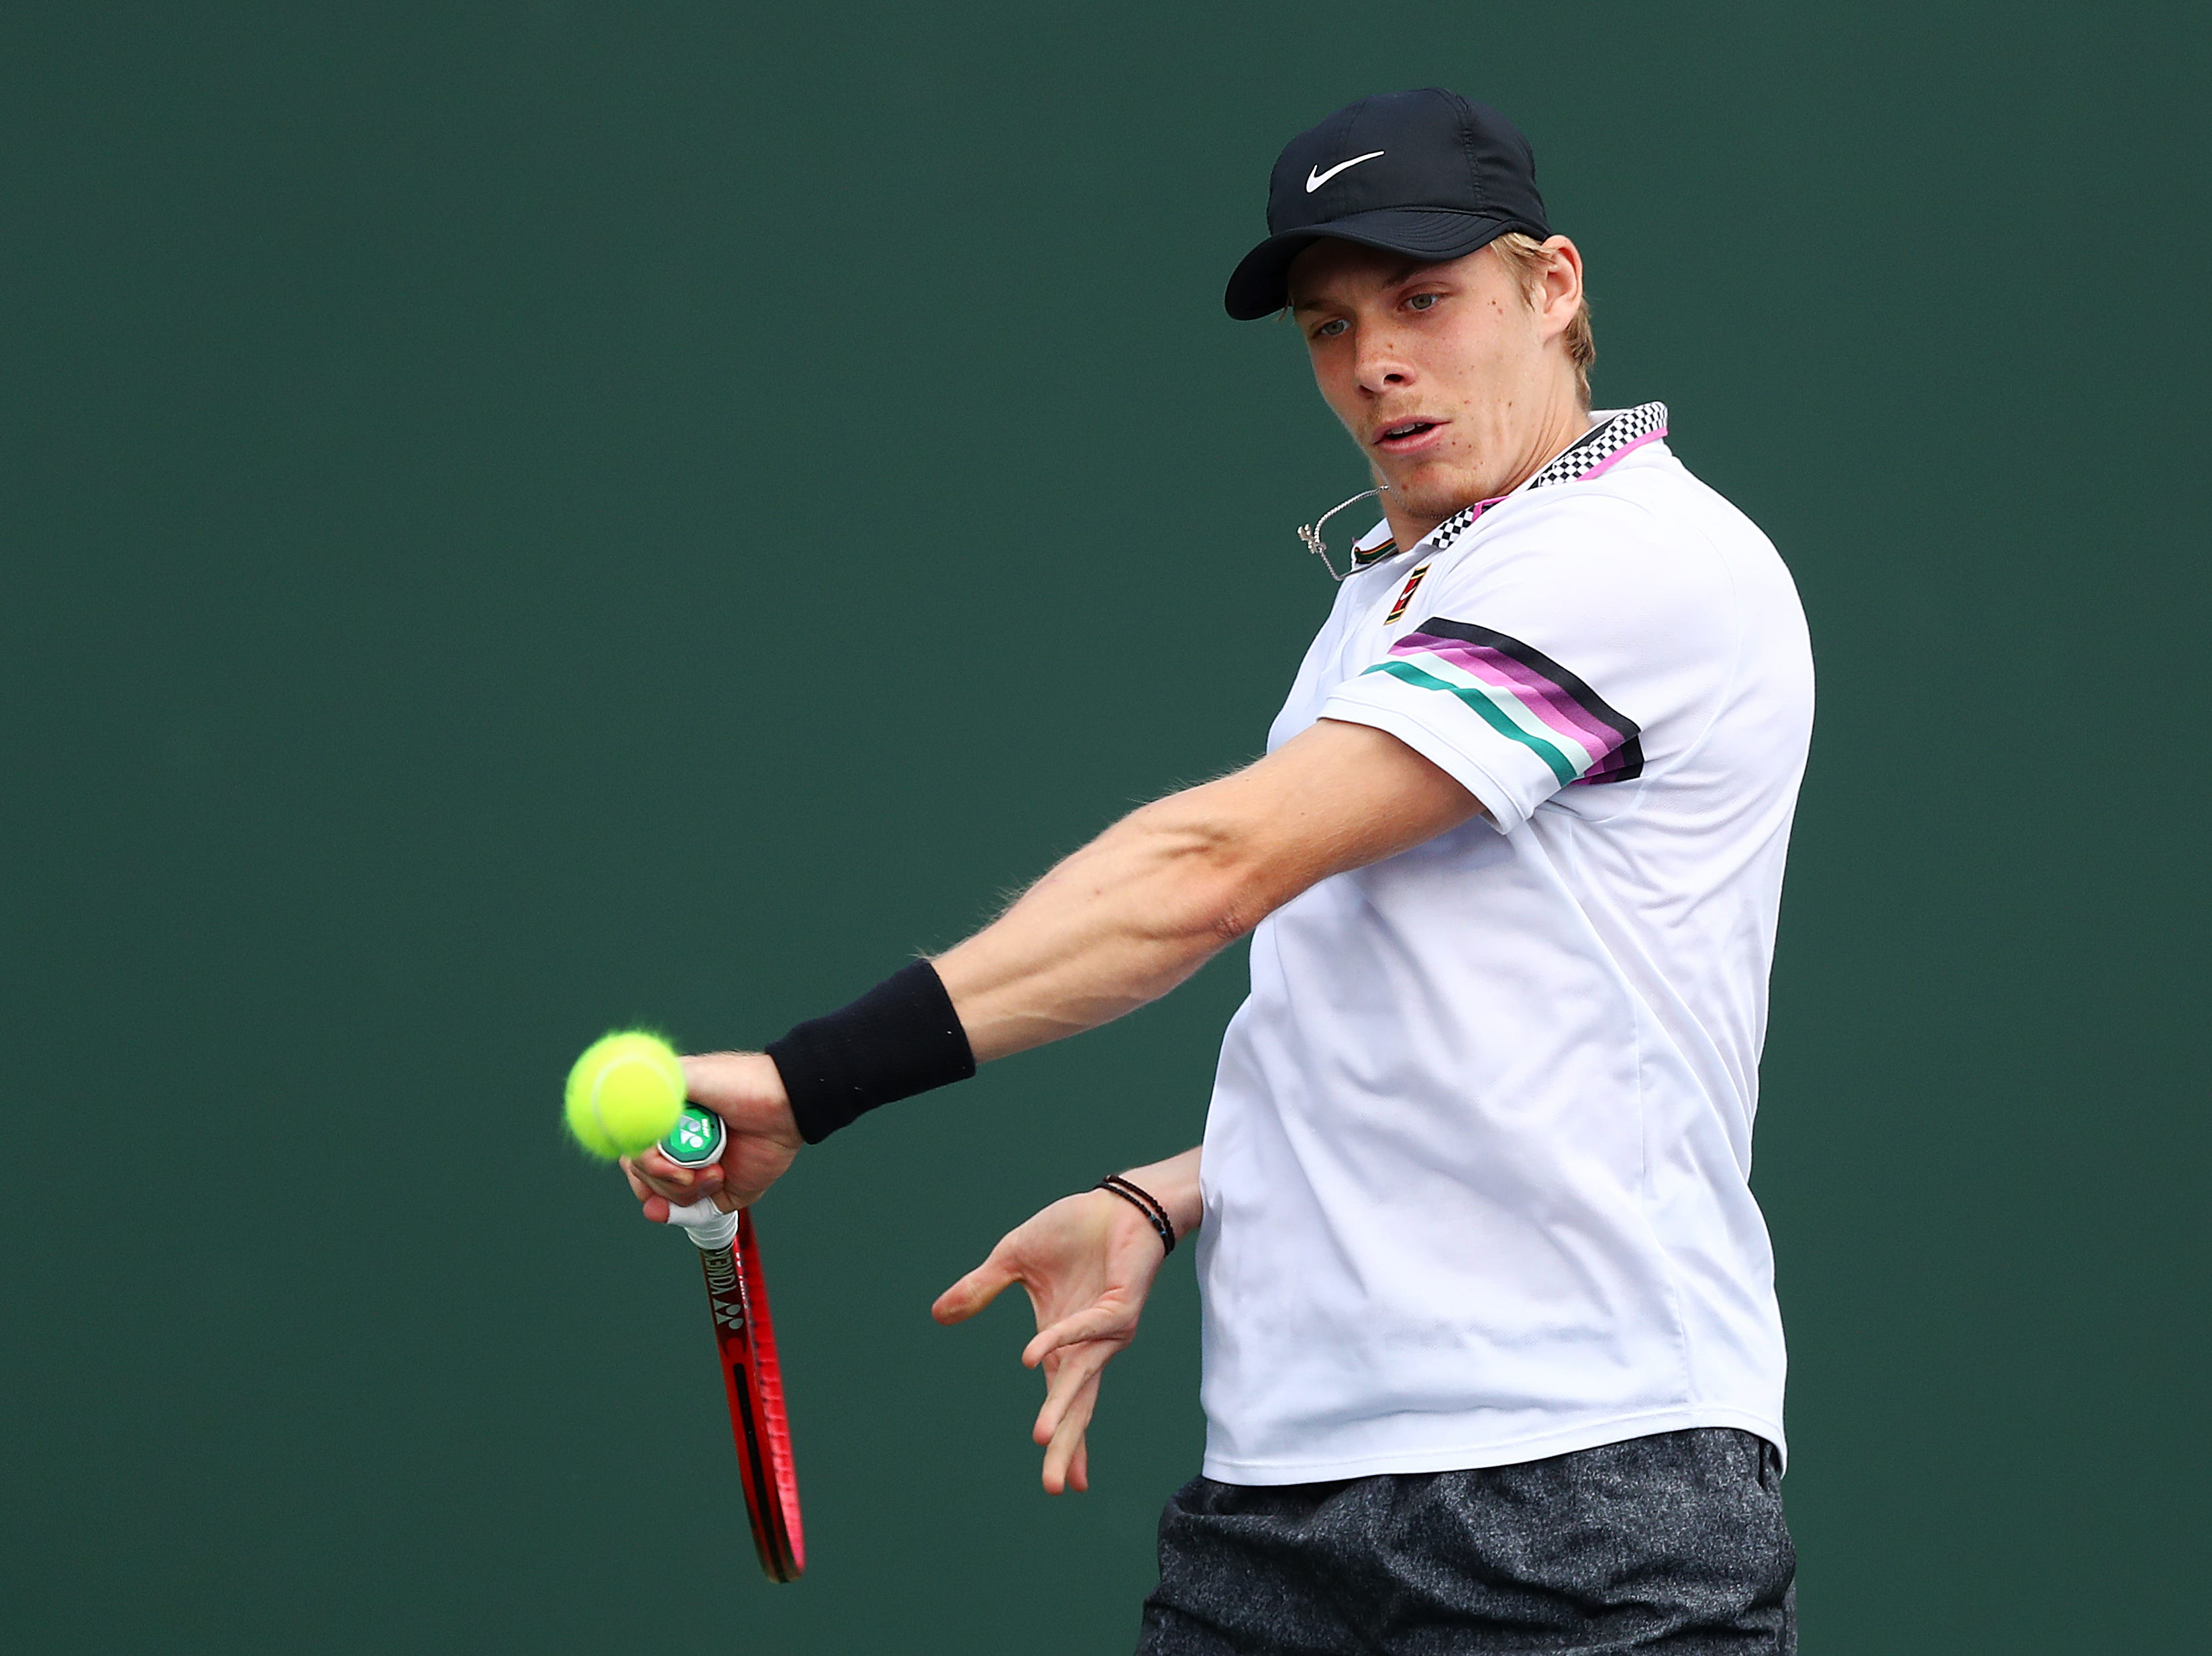 Canadian teen Denis Shapovalov busts into prepared rap after win at BNP Paribas Open